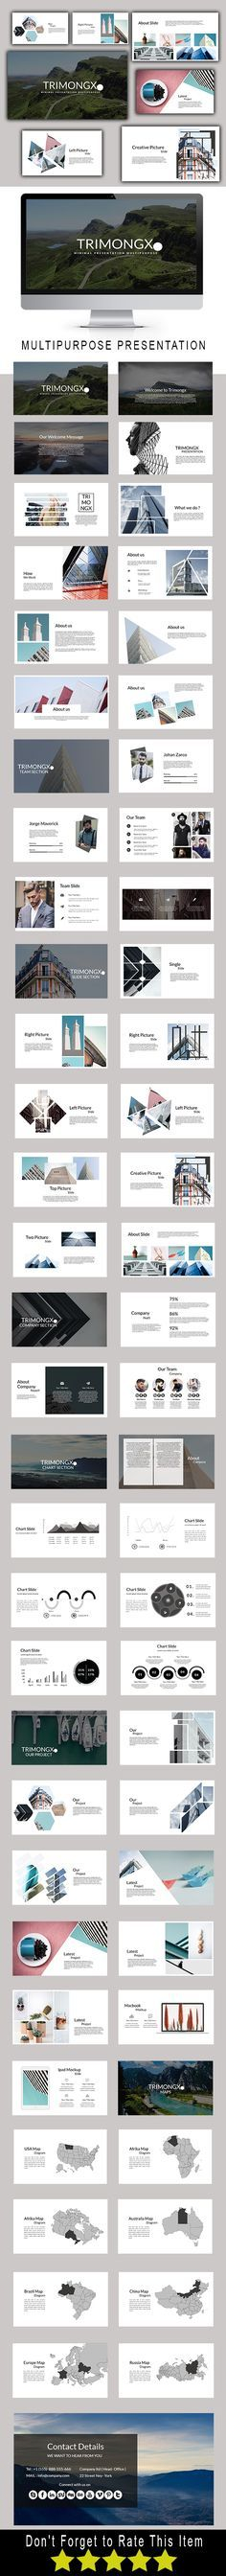 284 best PowerPoint Templates - Best images on Pinterest - powerpoint resume template